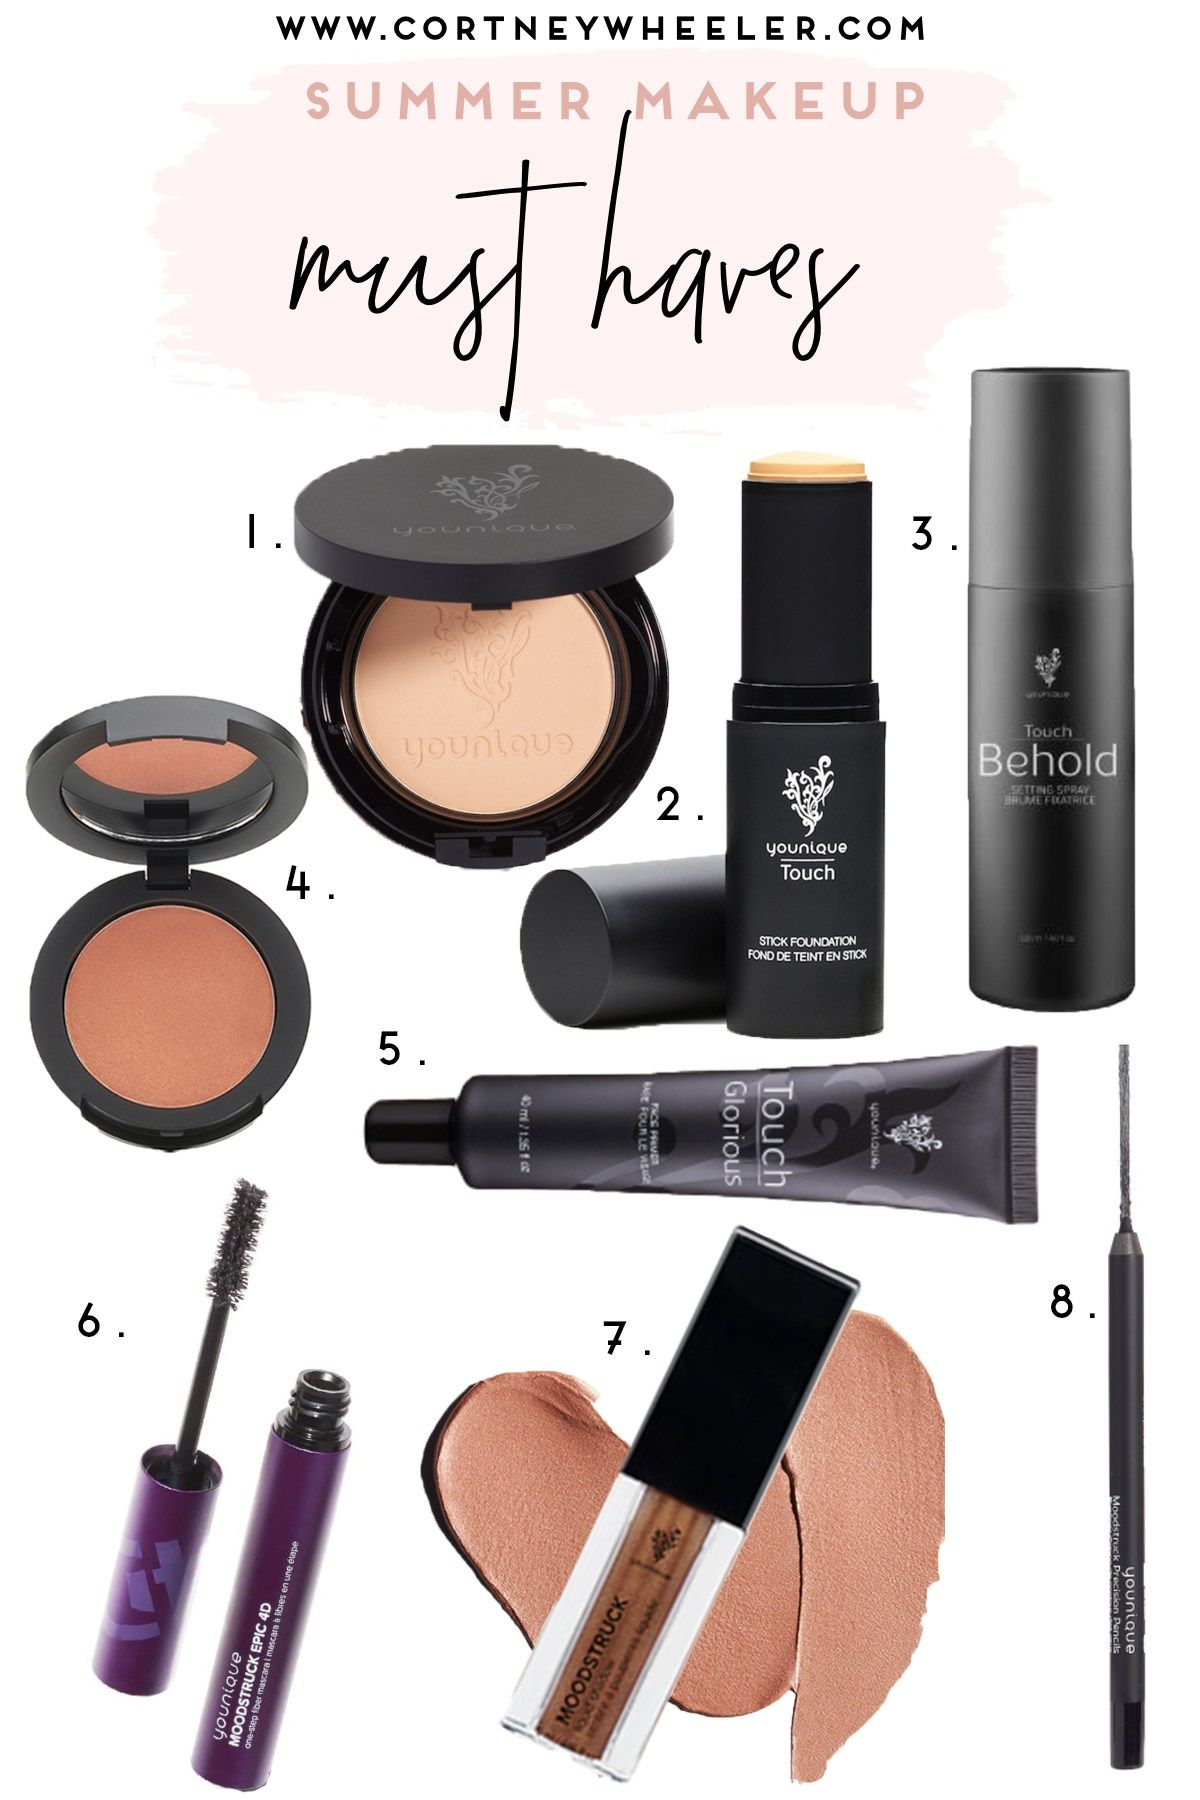 Summer Makeup MustHaves in 2020 Makeup must haves